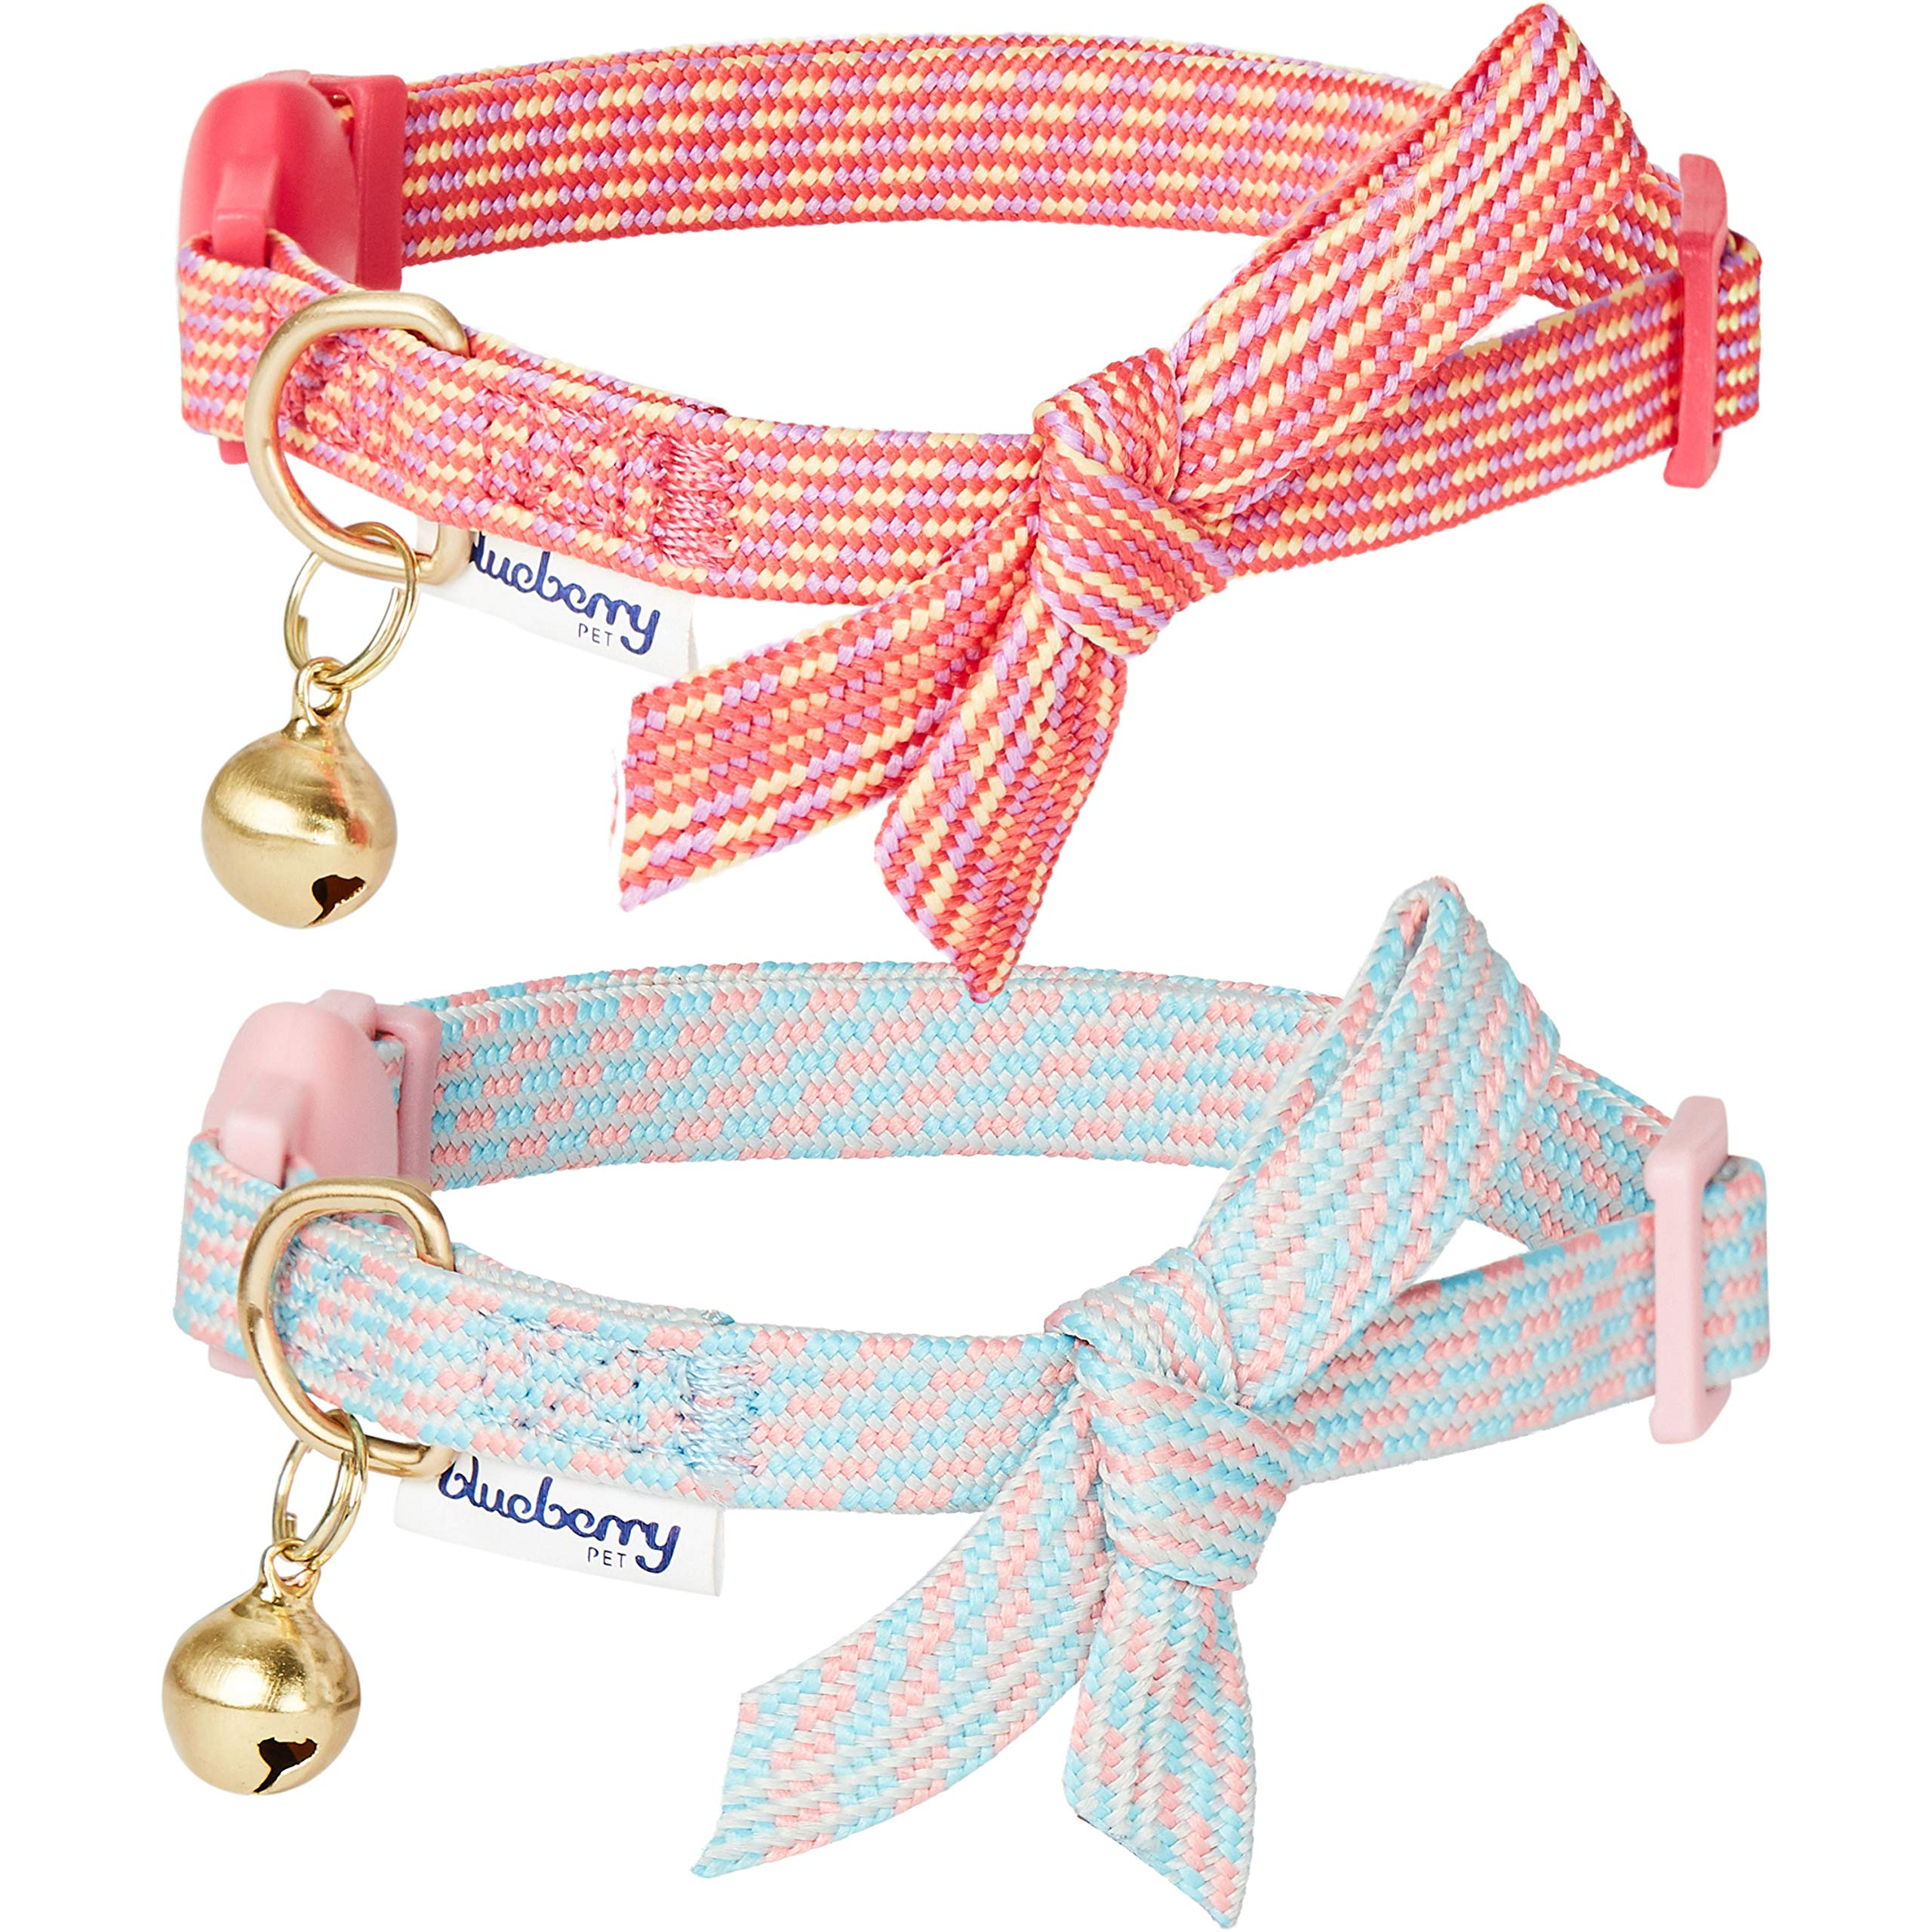 Blueberry Pet 2019 New Pack of 2 Cat Collars, Glam Cutie Diagonal Striped Adjustable Breakaway Cat Collar with Bowtie & Bell, Neck 9''-13'' by Blueberry Pet